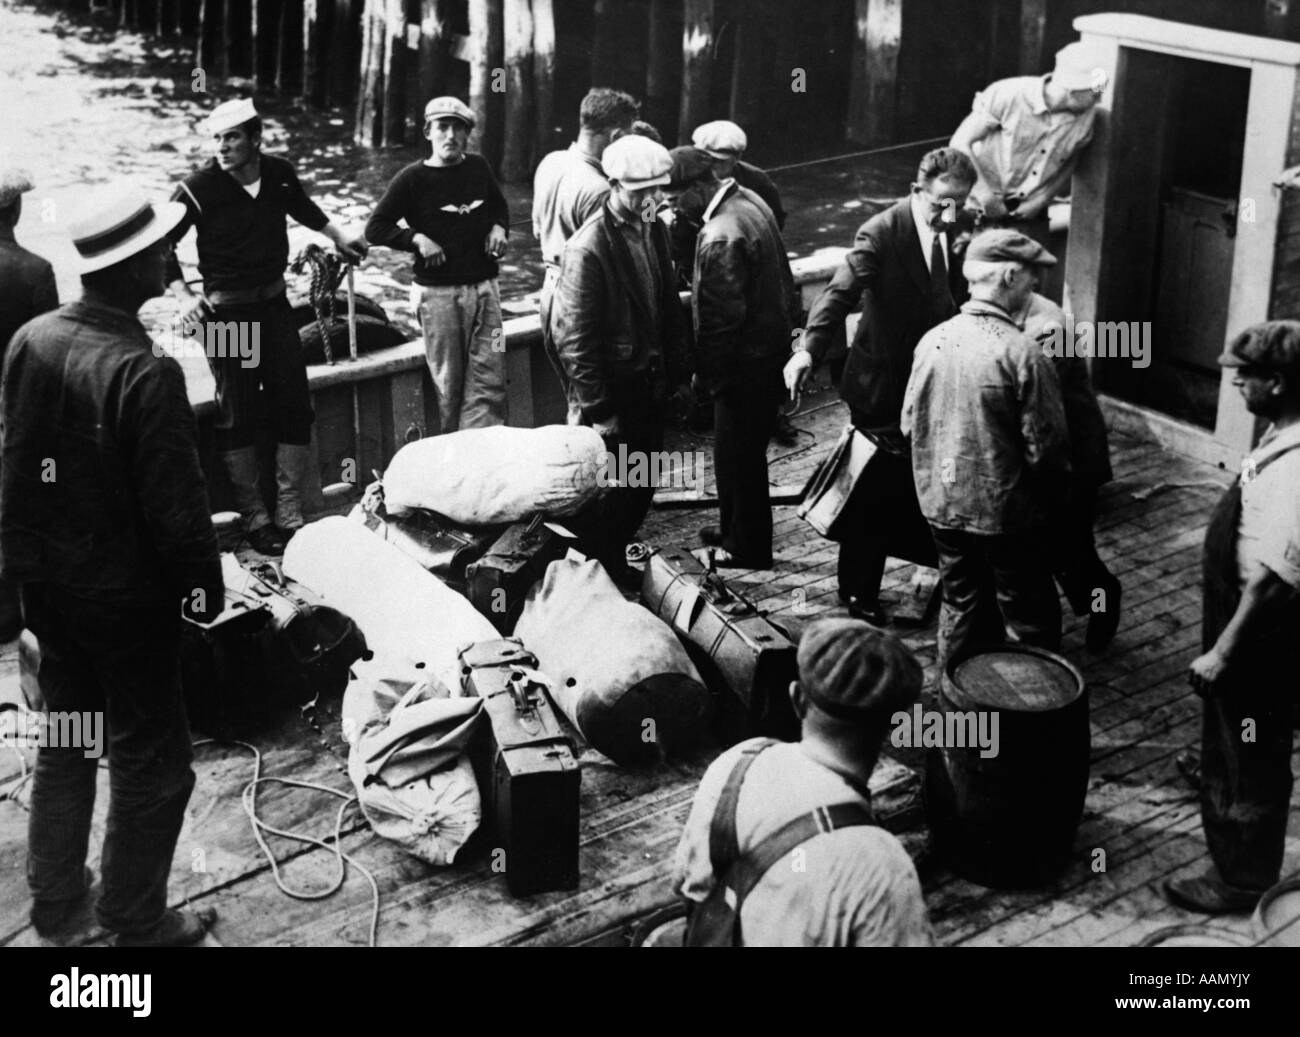 1920s 1930s PROHIBITION CAPTURED RUM RUNNERS ON DECK OF BRITISH SHIP ALCOHOL FORBIDDEN 18TH AMENDMENT - Stock Image